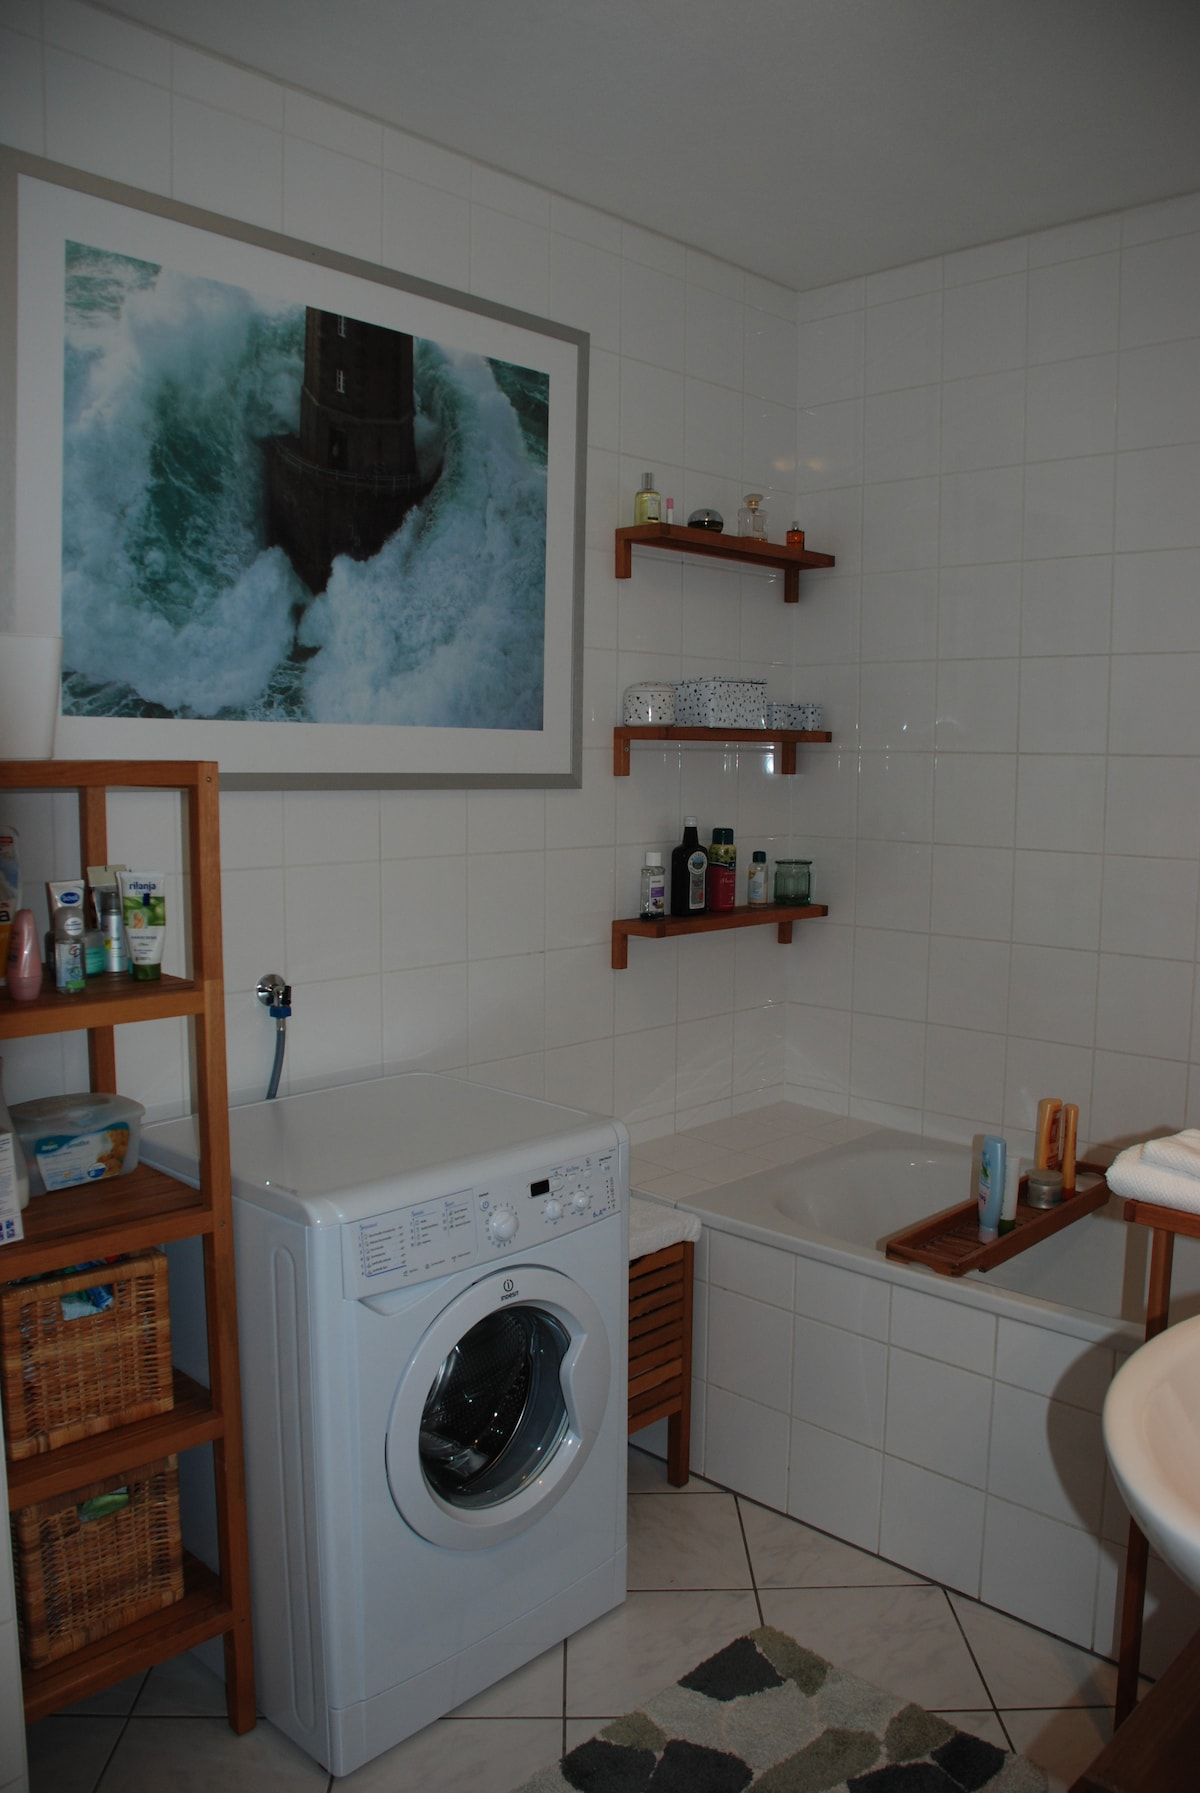 Bathroom with tub and washing machine